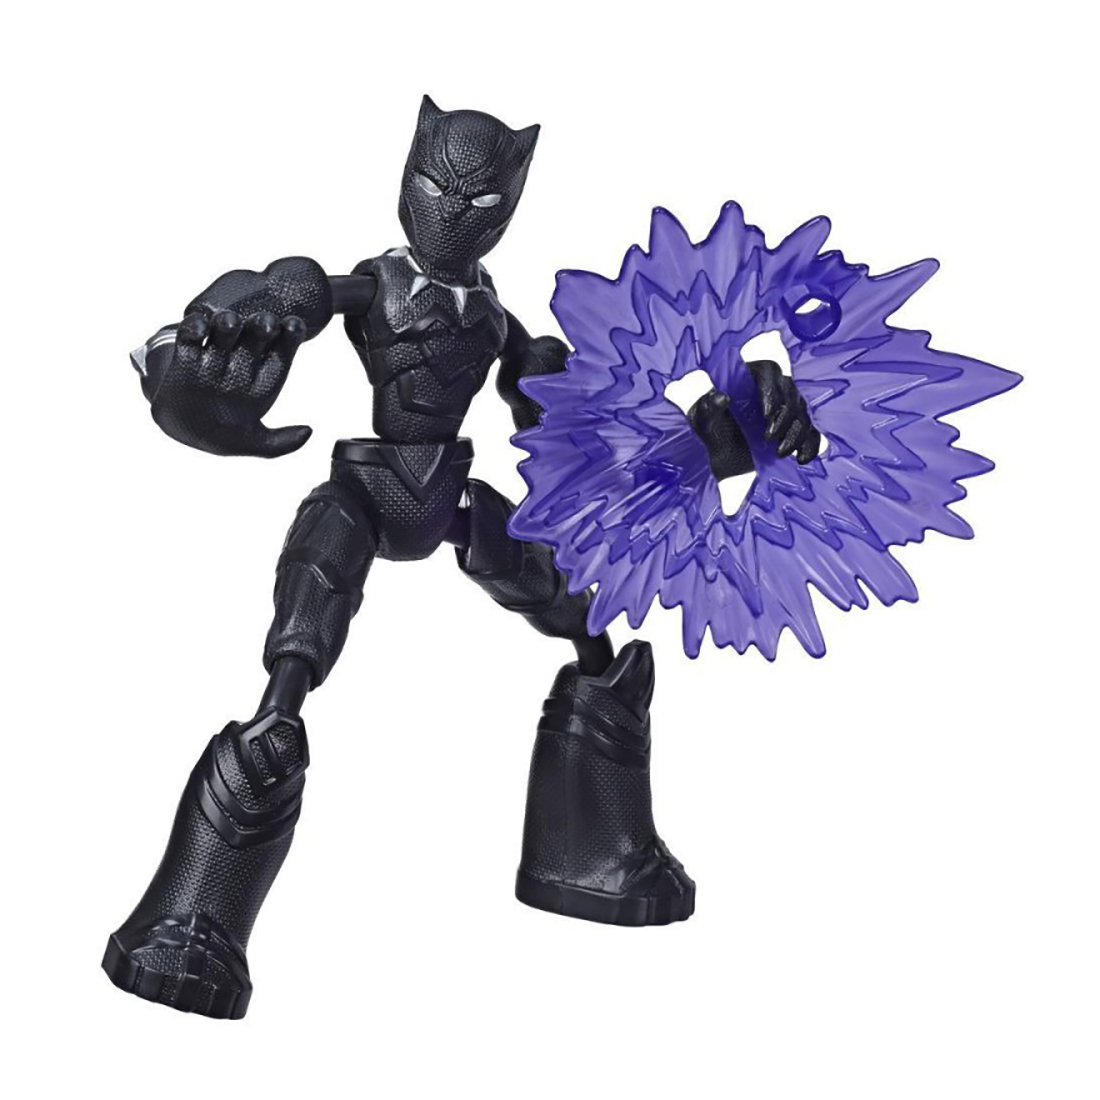 Figurina flexibila Avengers Bend and Flex, Black Panther (E7868)